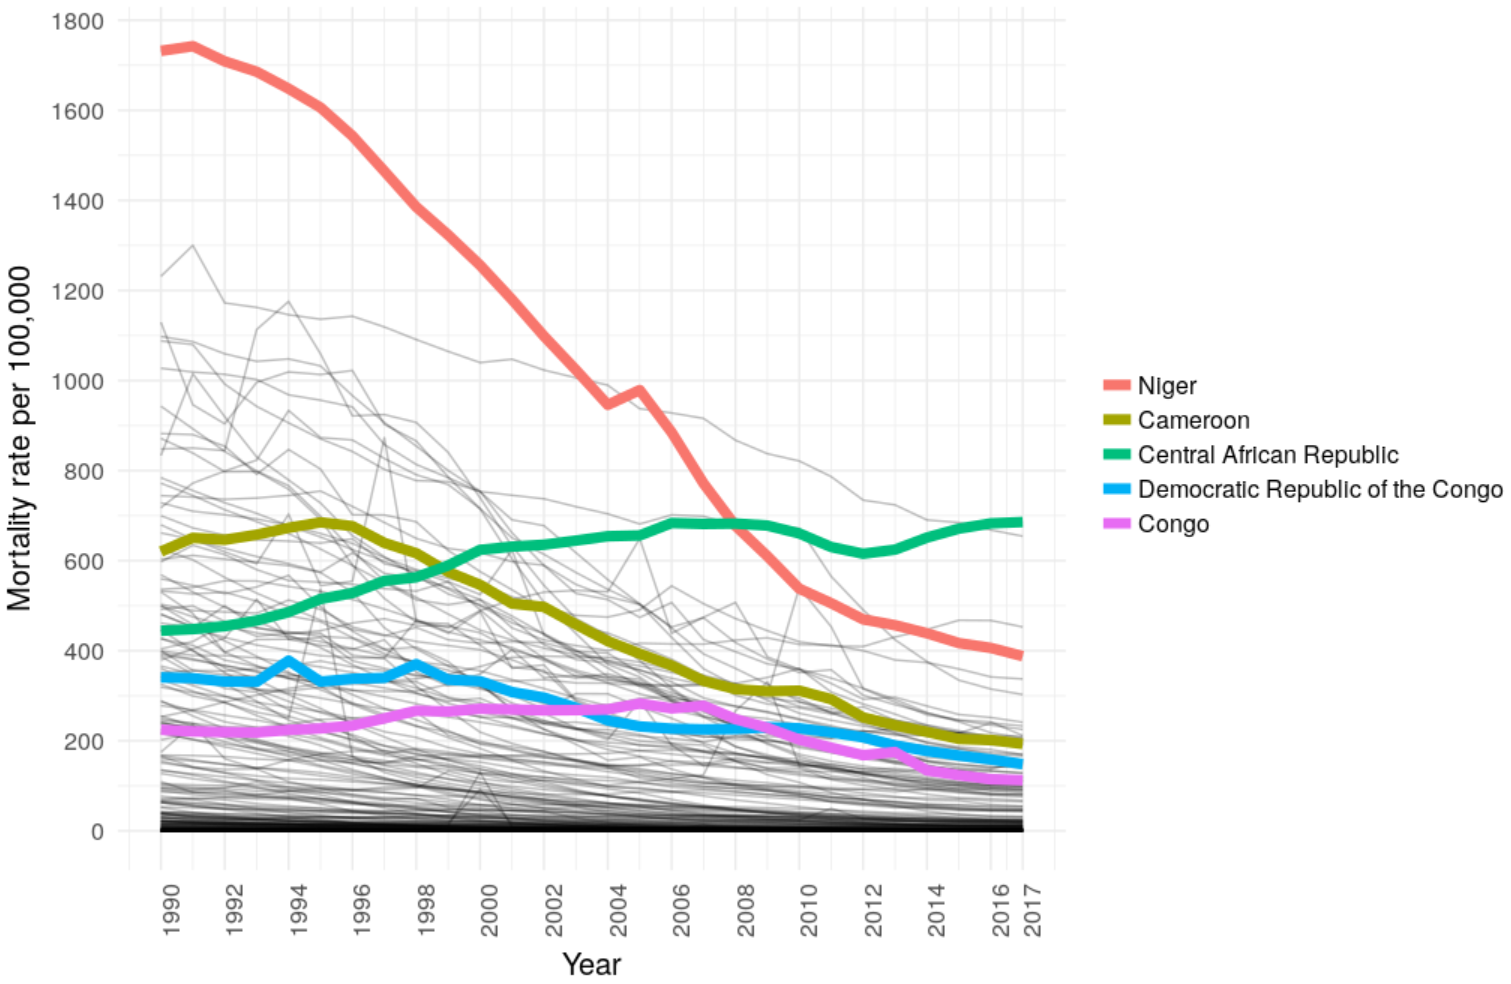 Graph showing diarrhea mortality rates in select countries, 1990-2017